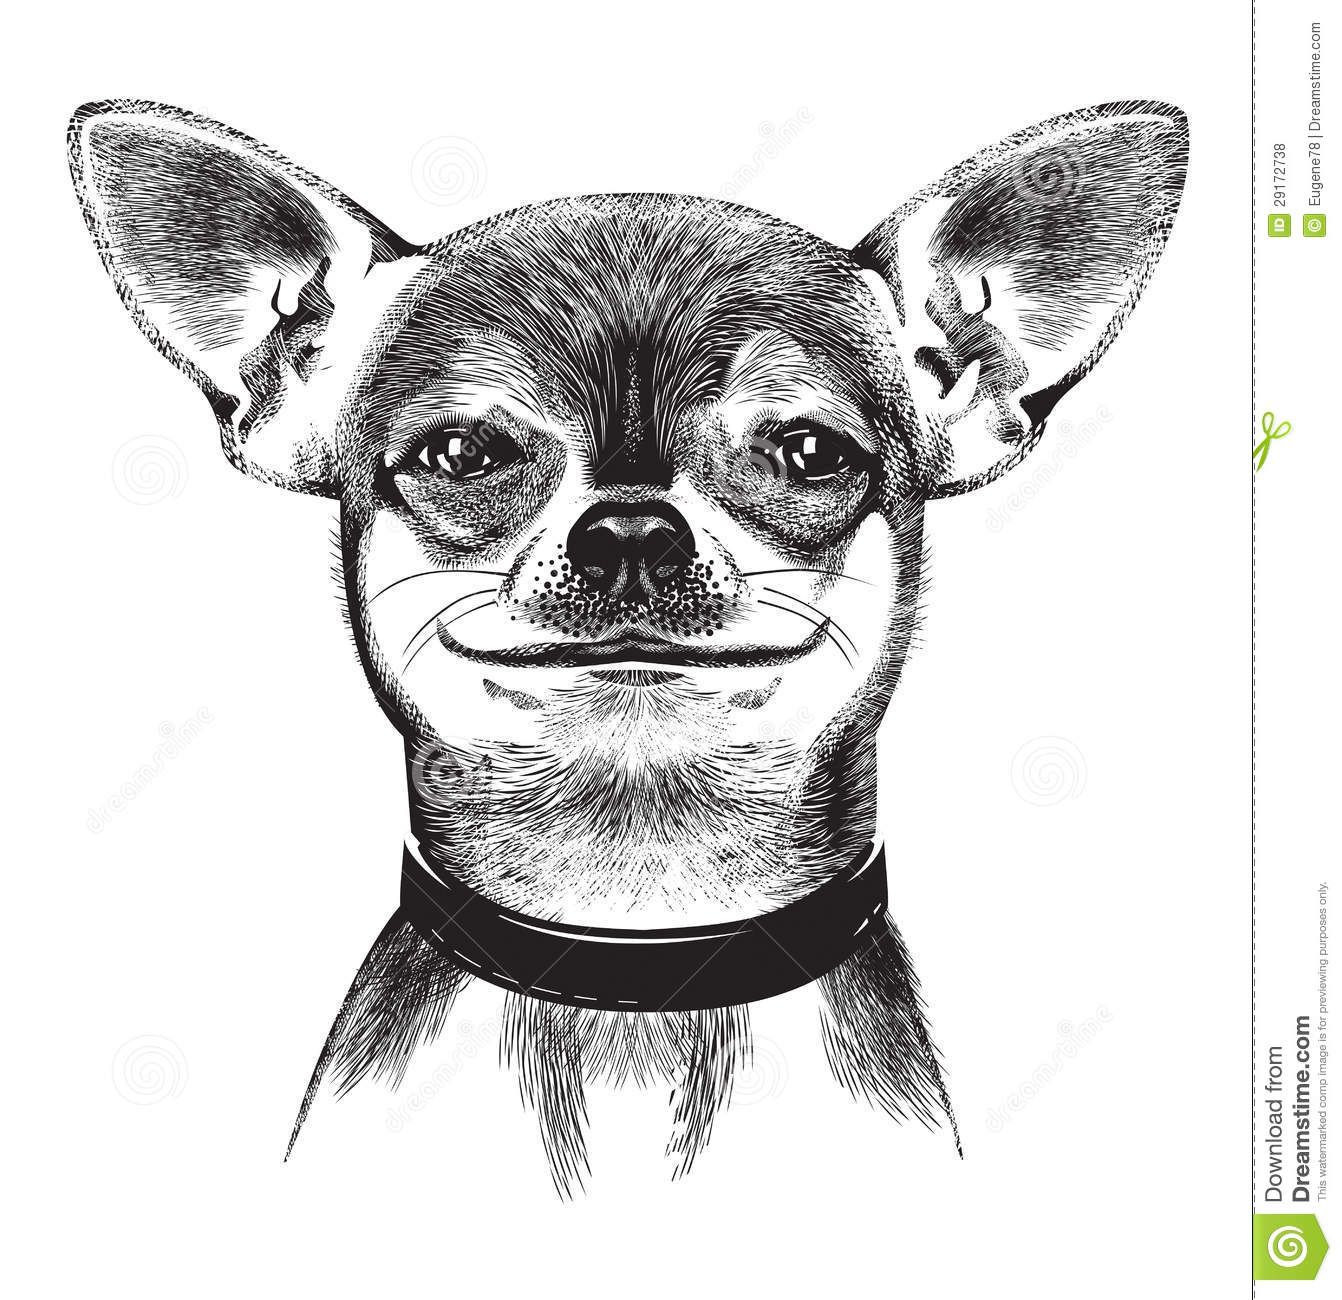 Cartoon Chihuahua Dog Clip Art Royalty Free Stock Image.